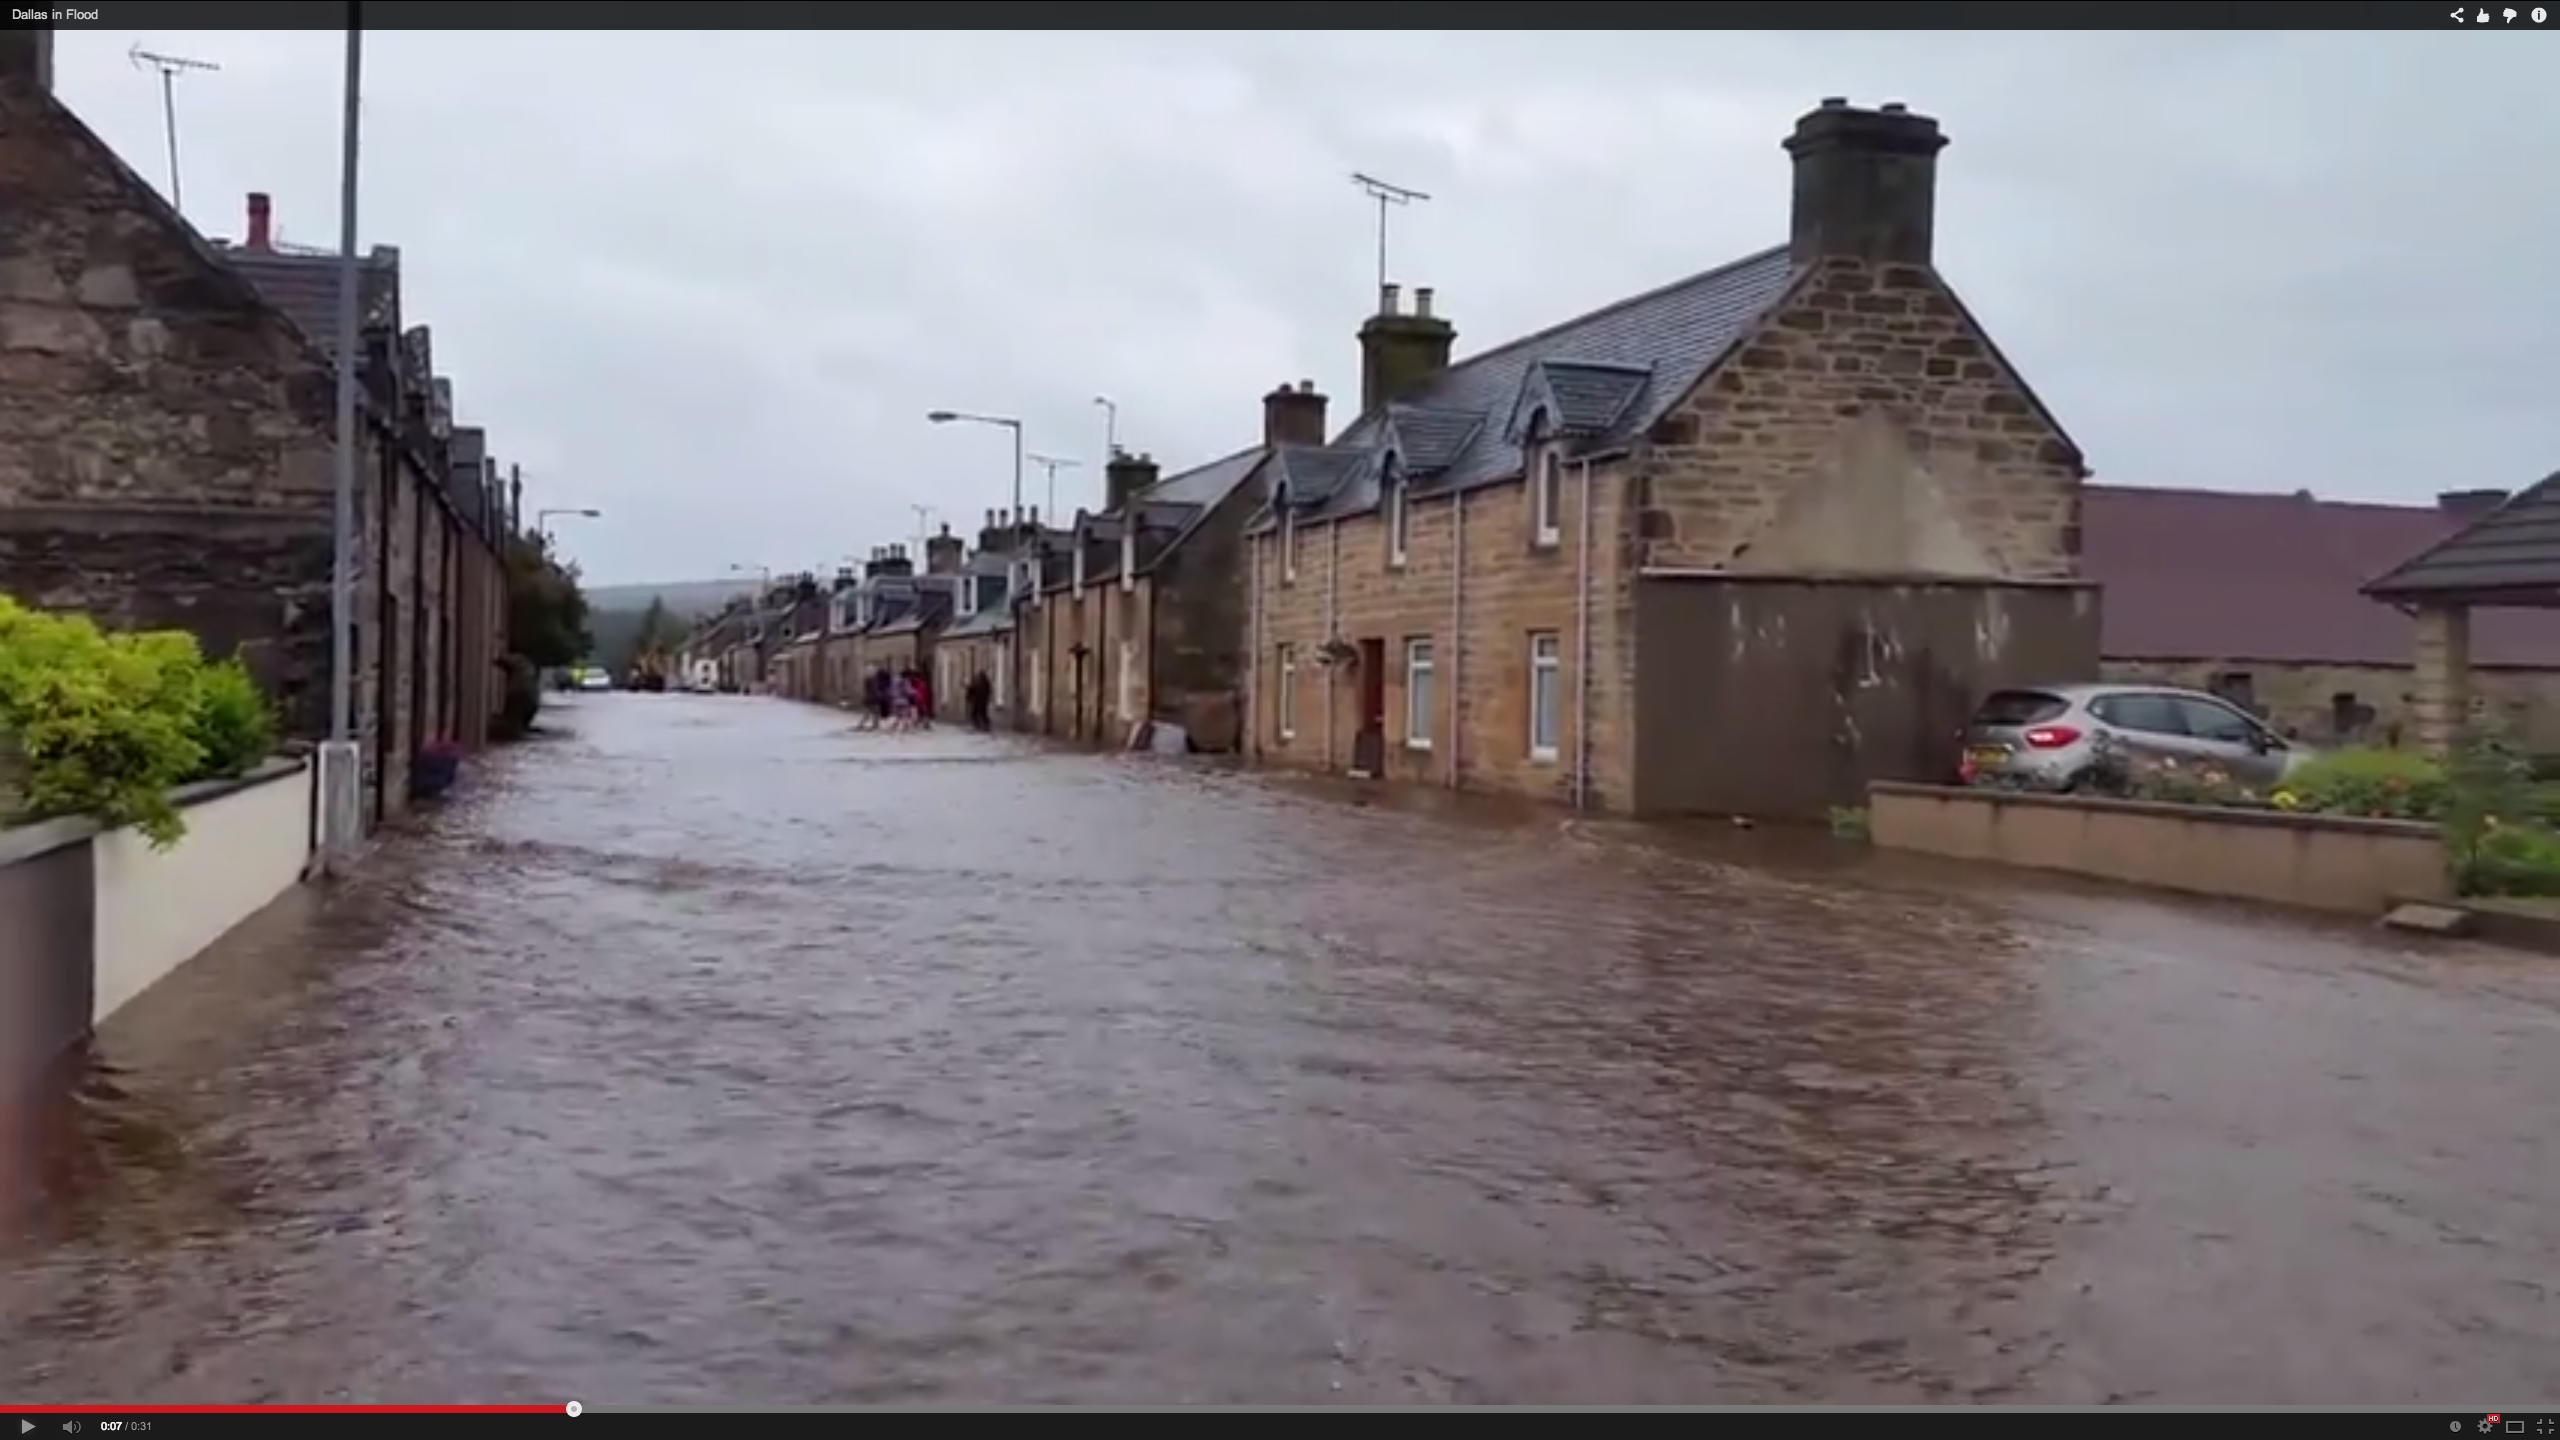 Flooding in Moray in August 2015